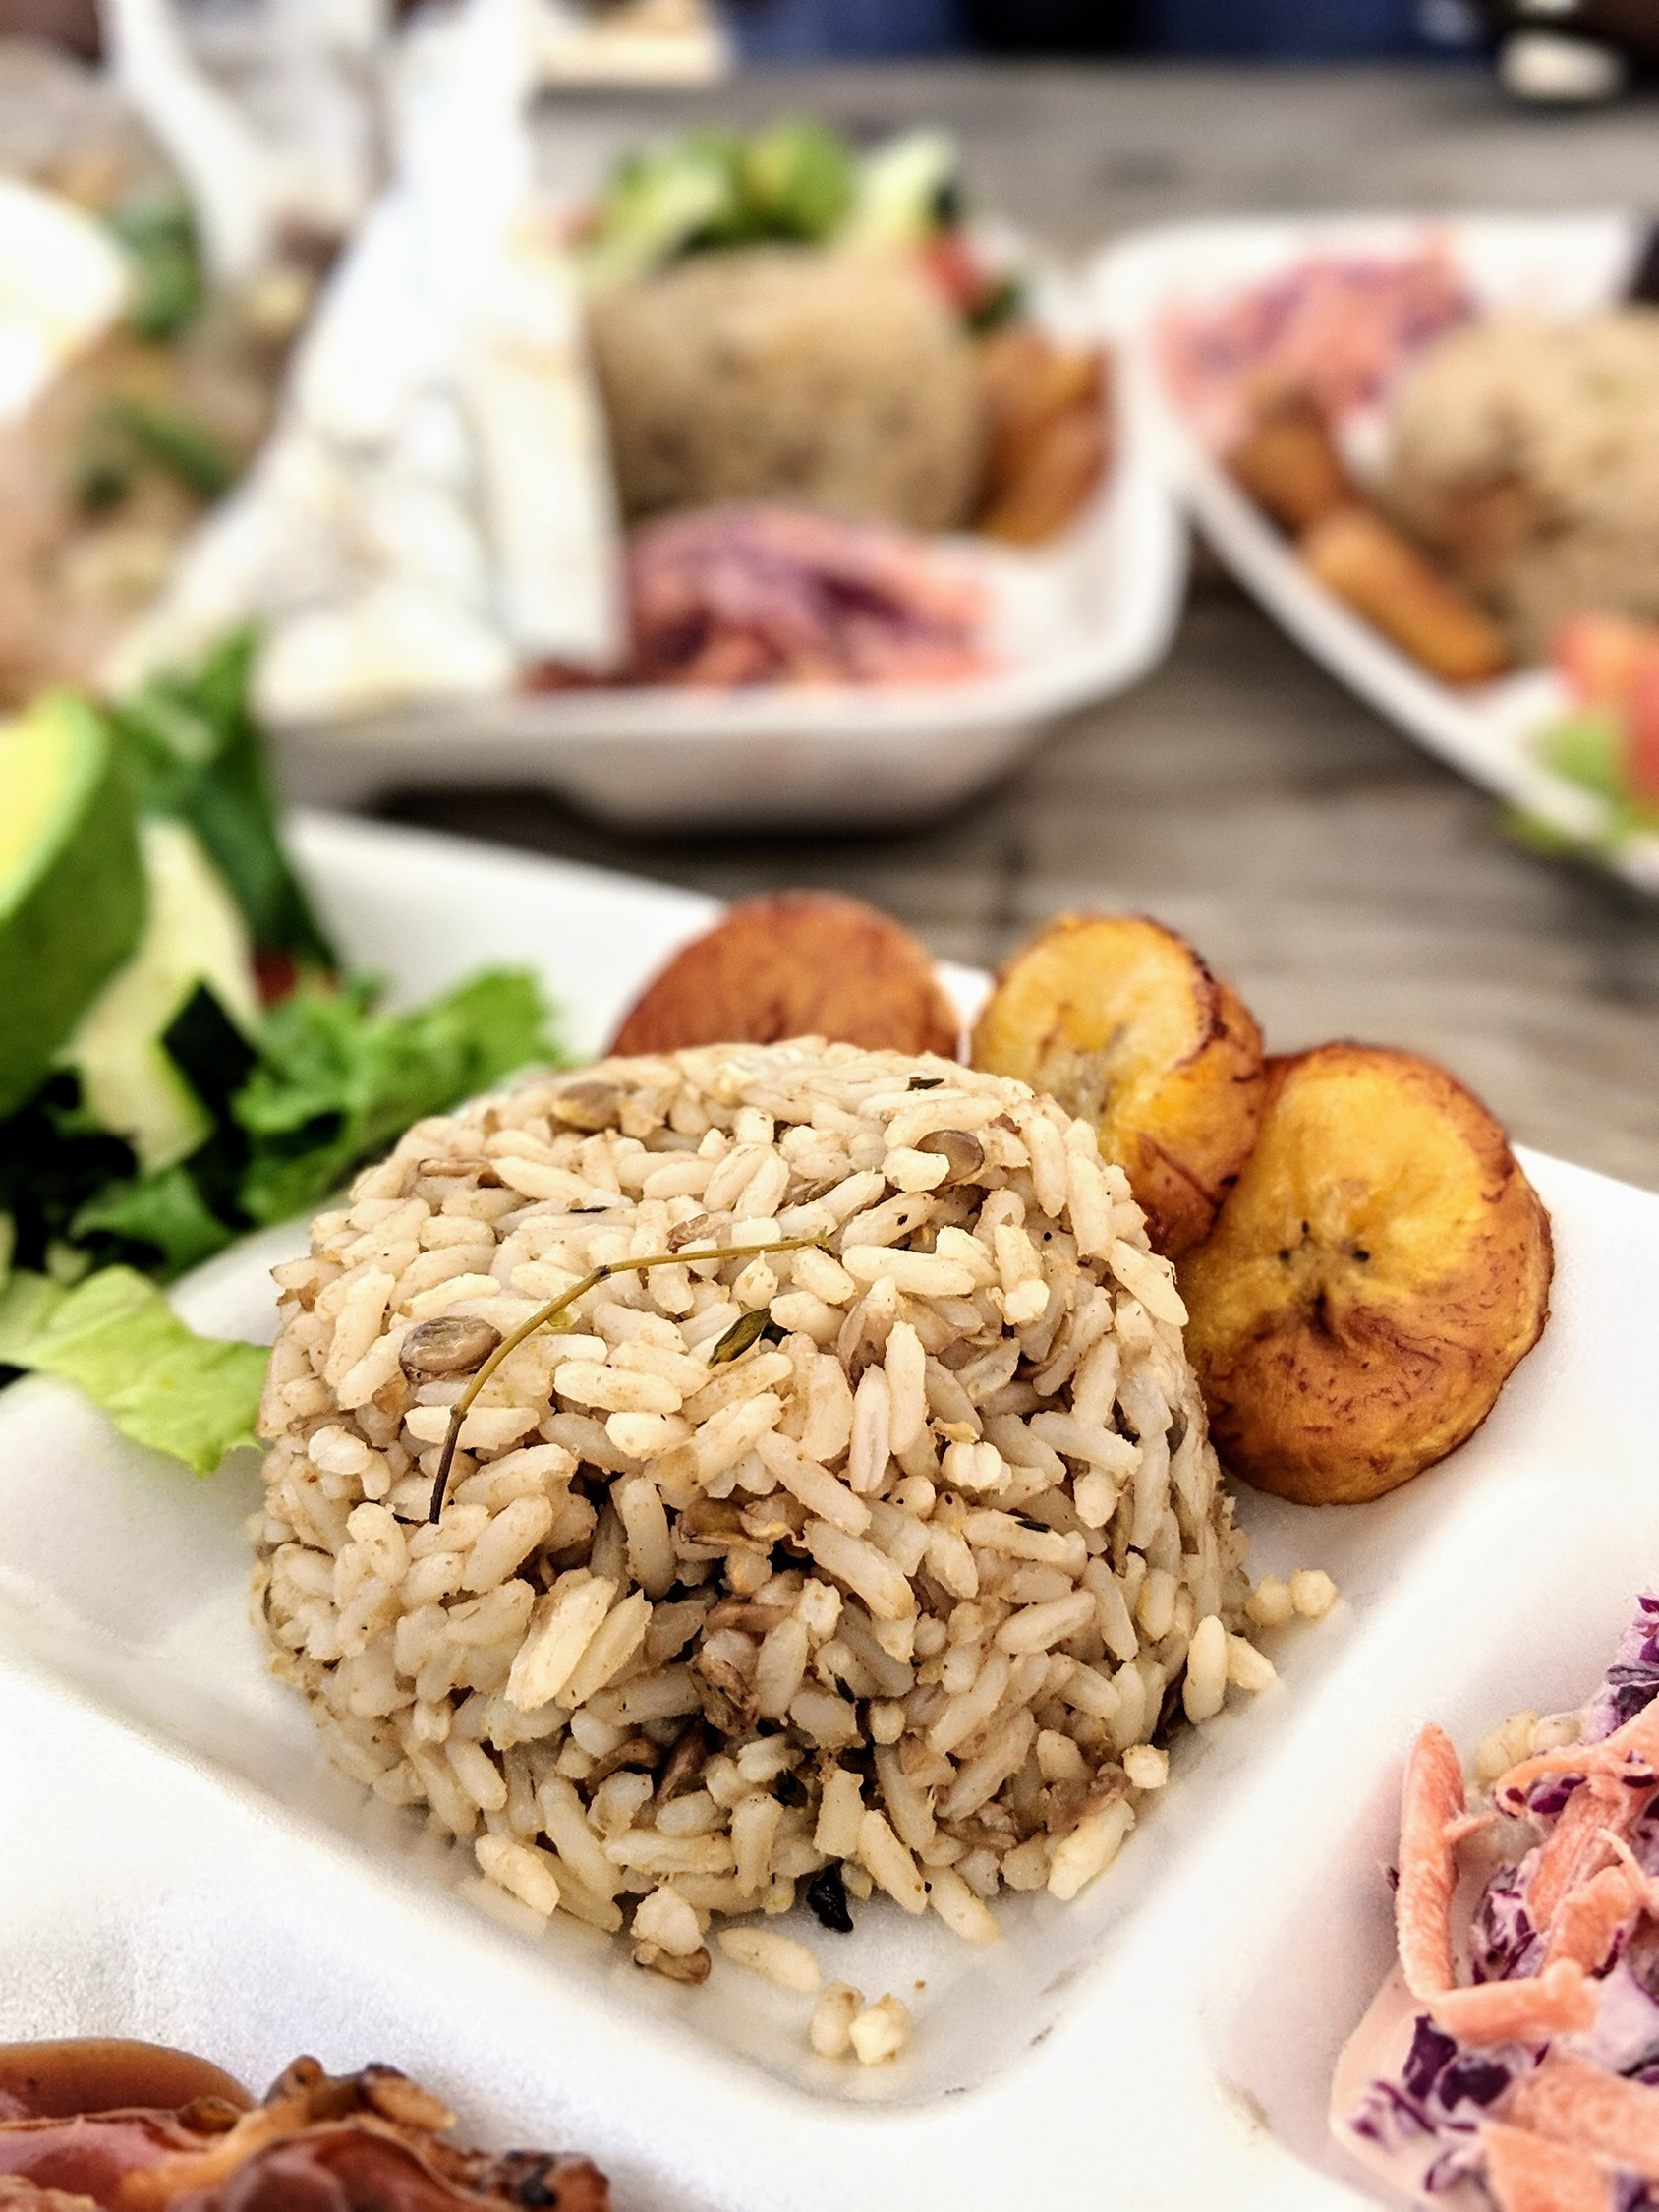 Pigeon peas and rice in Anguilla - the country's national dish and most beloved Anguilla food.